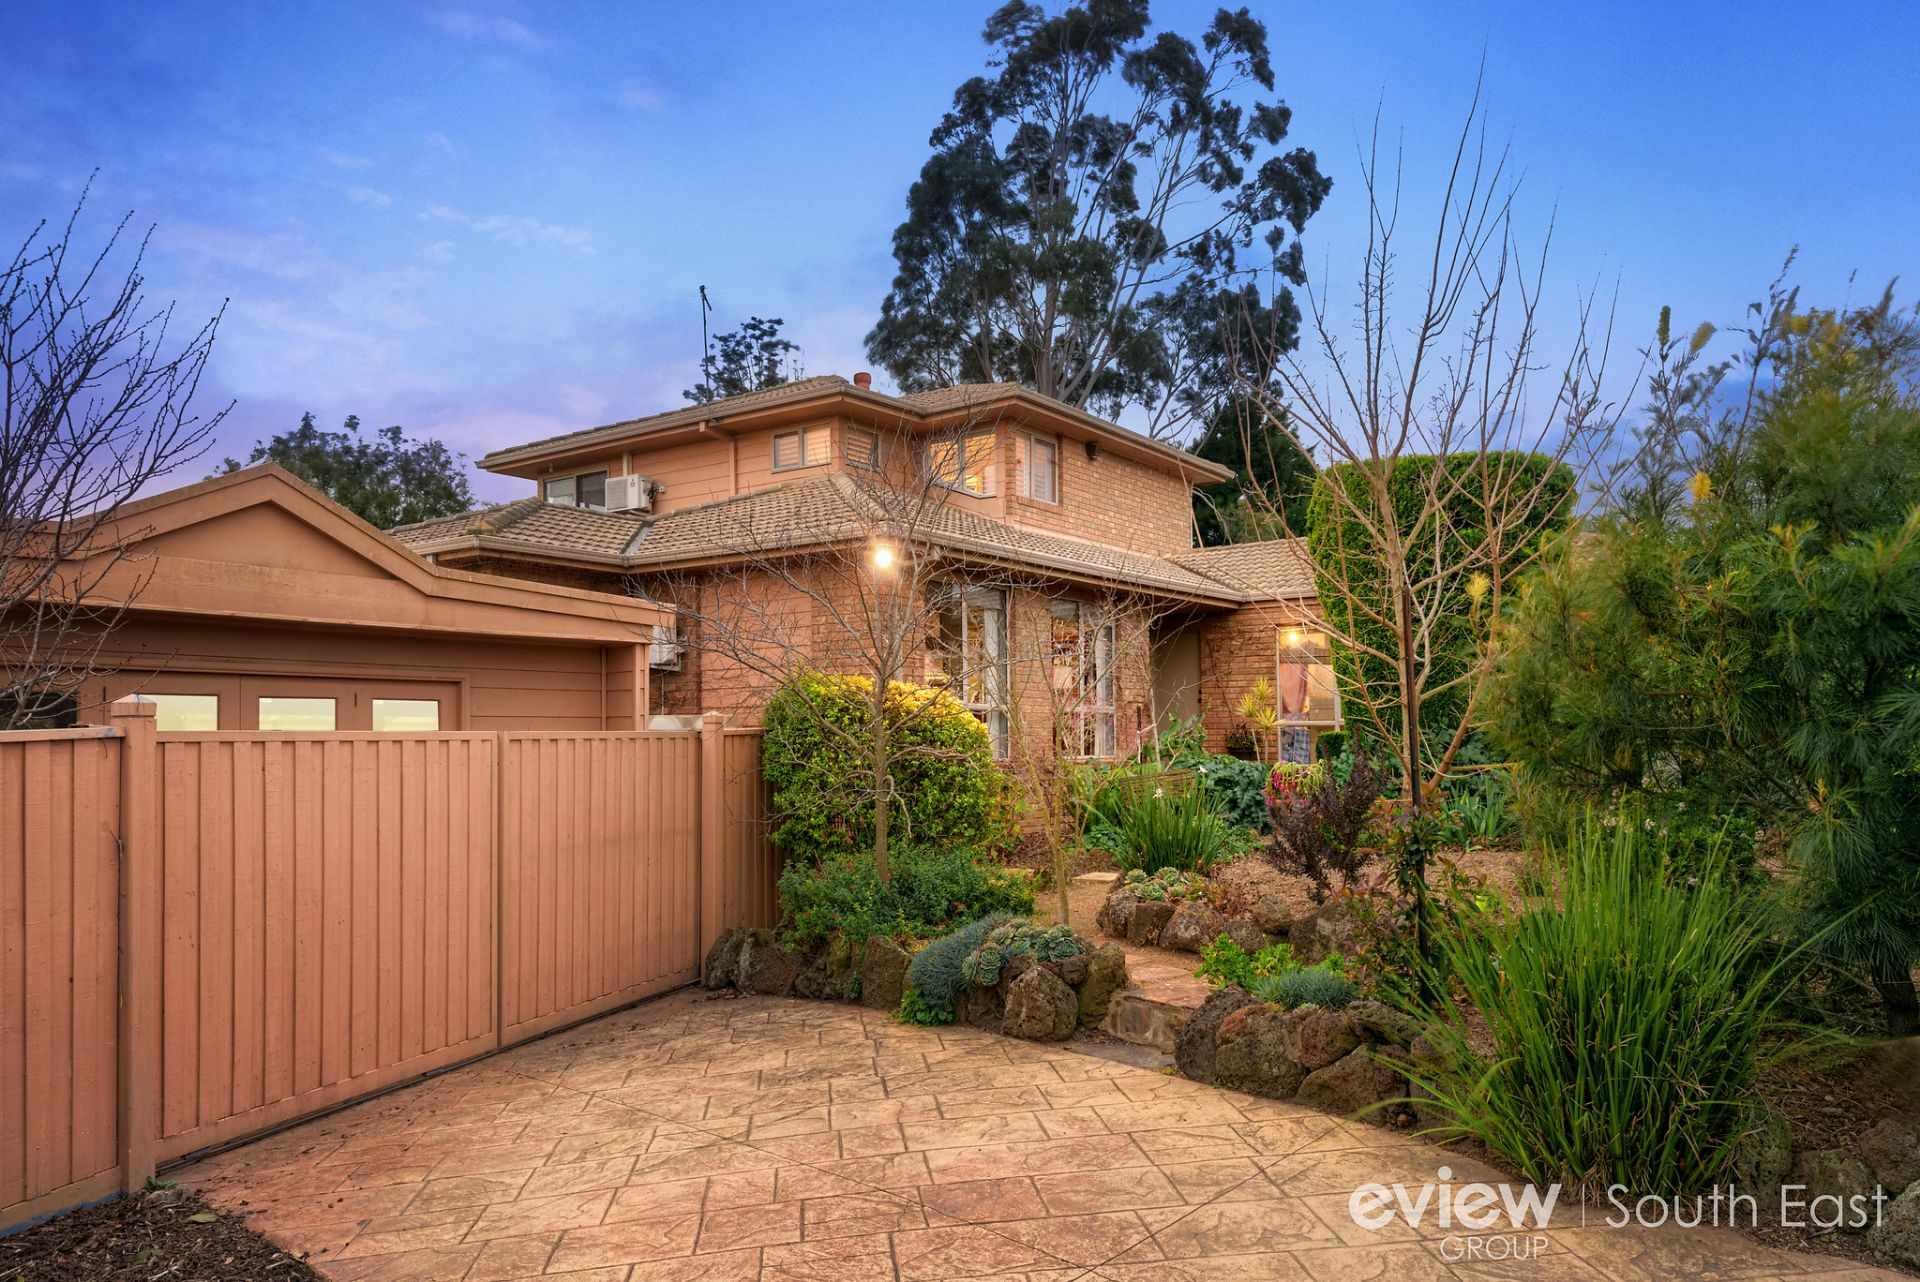 66 Norfolk Drive, NARRE WARREN, VIC, 3805 - Image